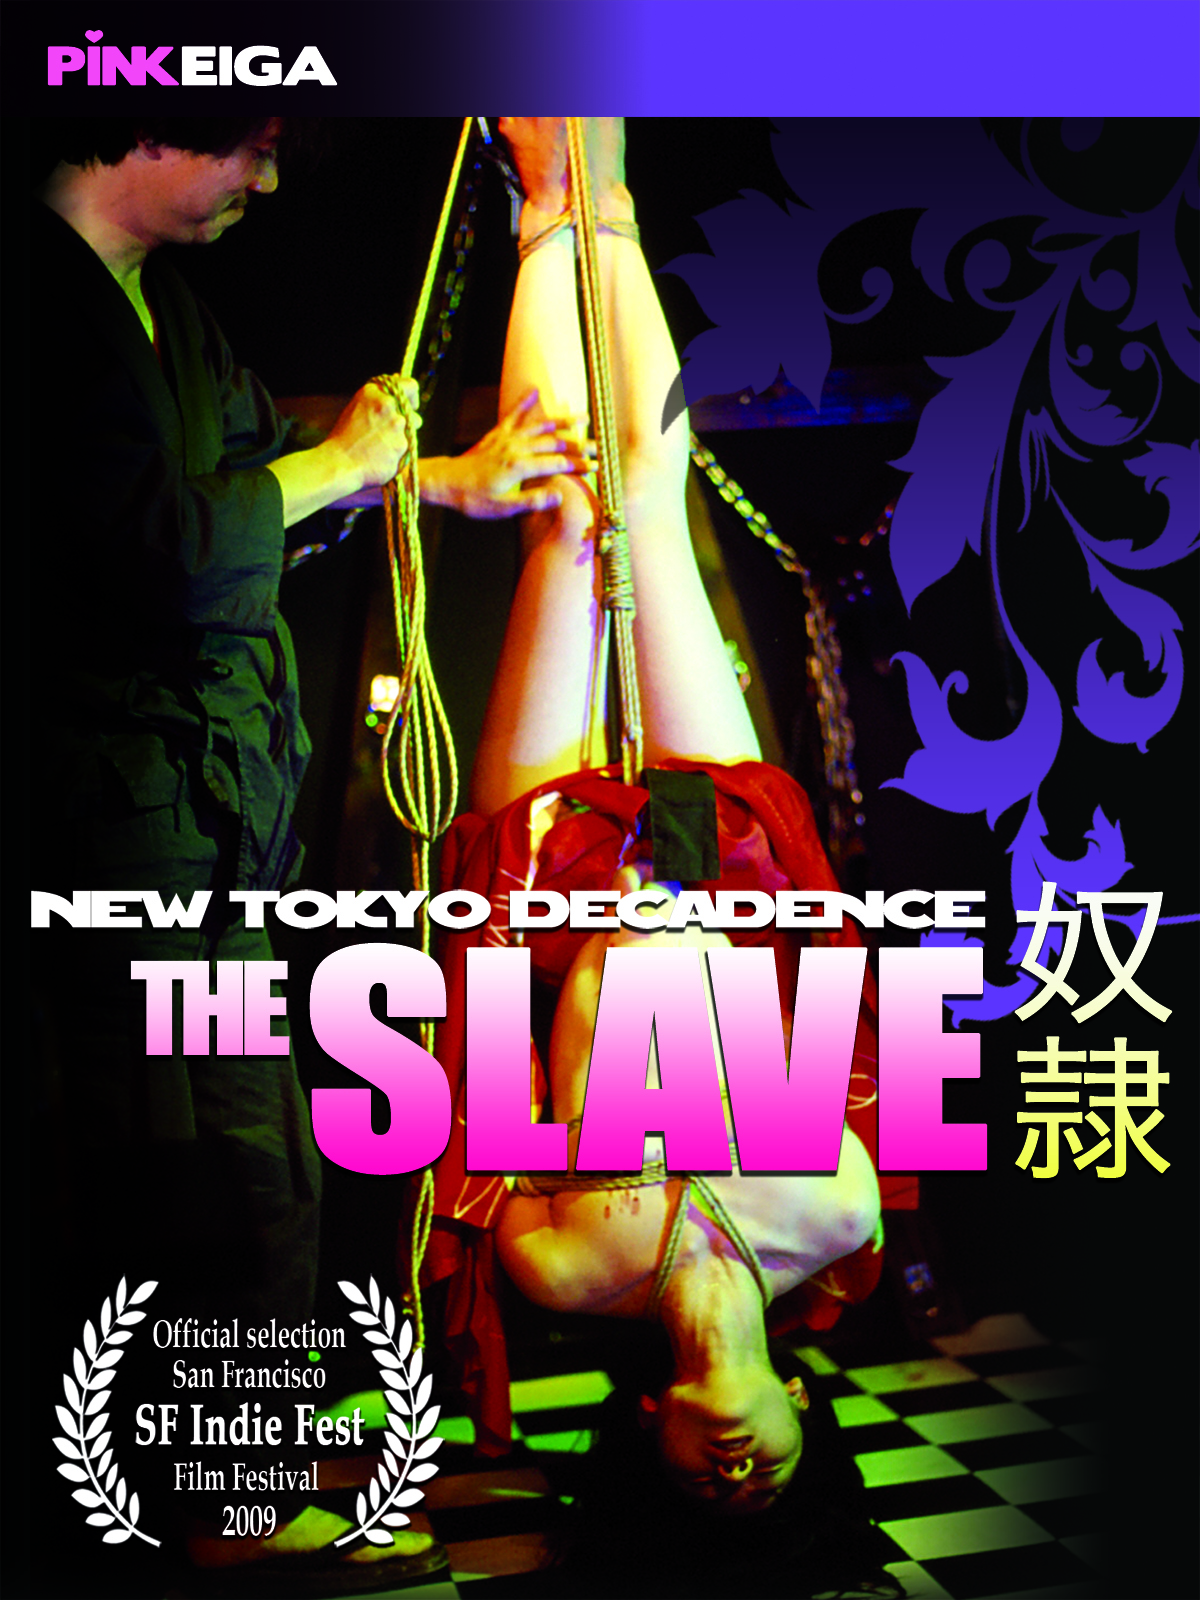 New Tokyo Decadence - The Slave  -HD-  DOWNLOAD TO OWN